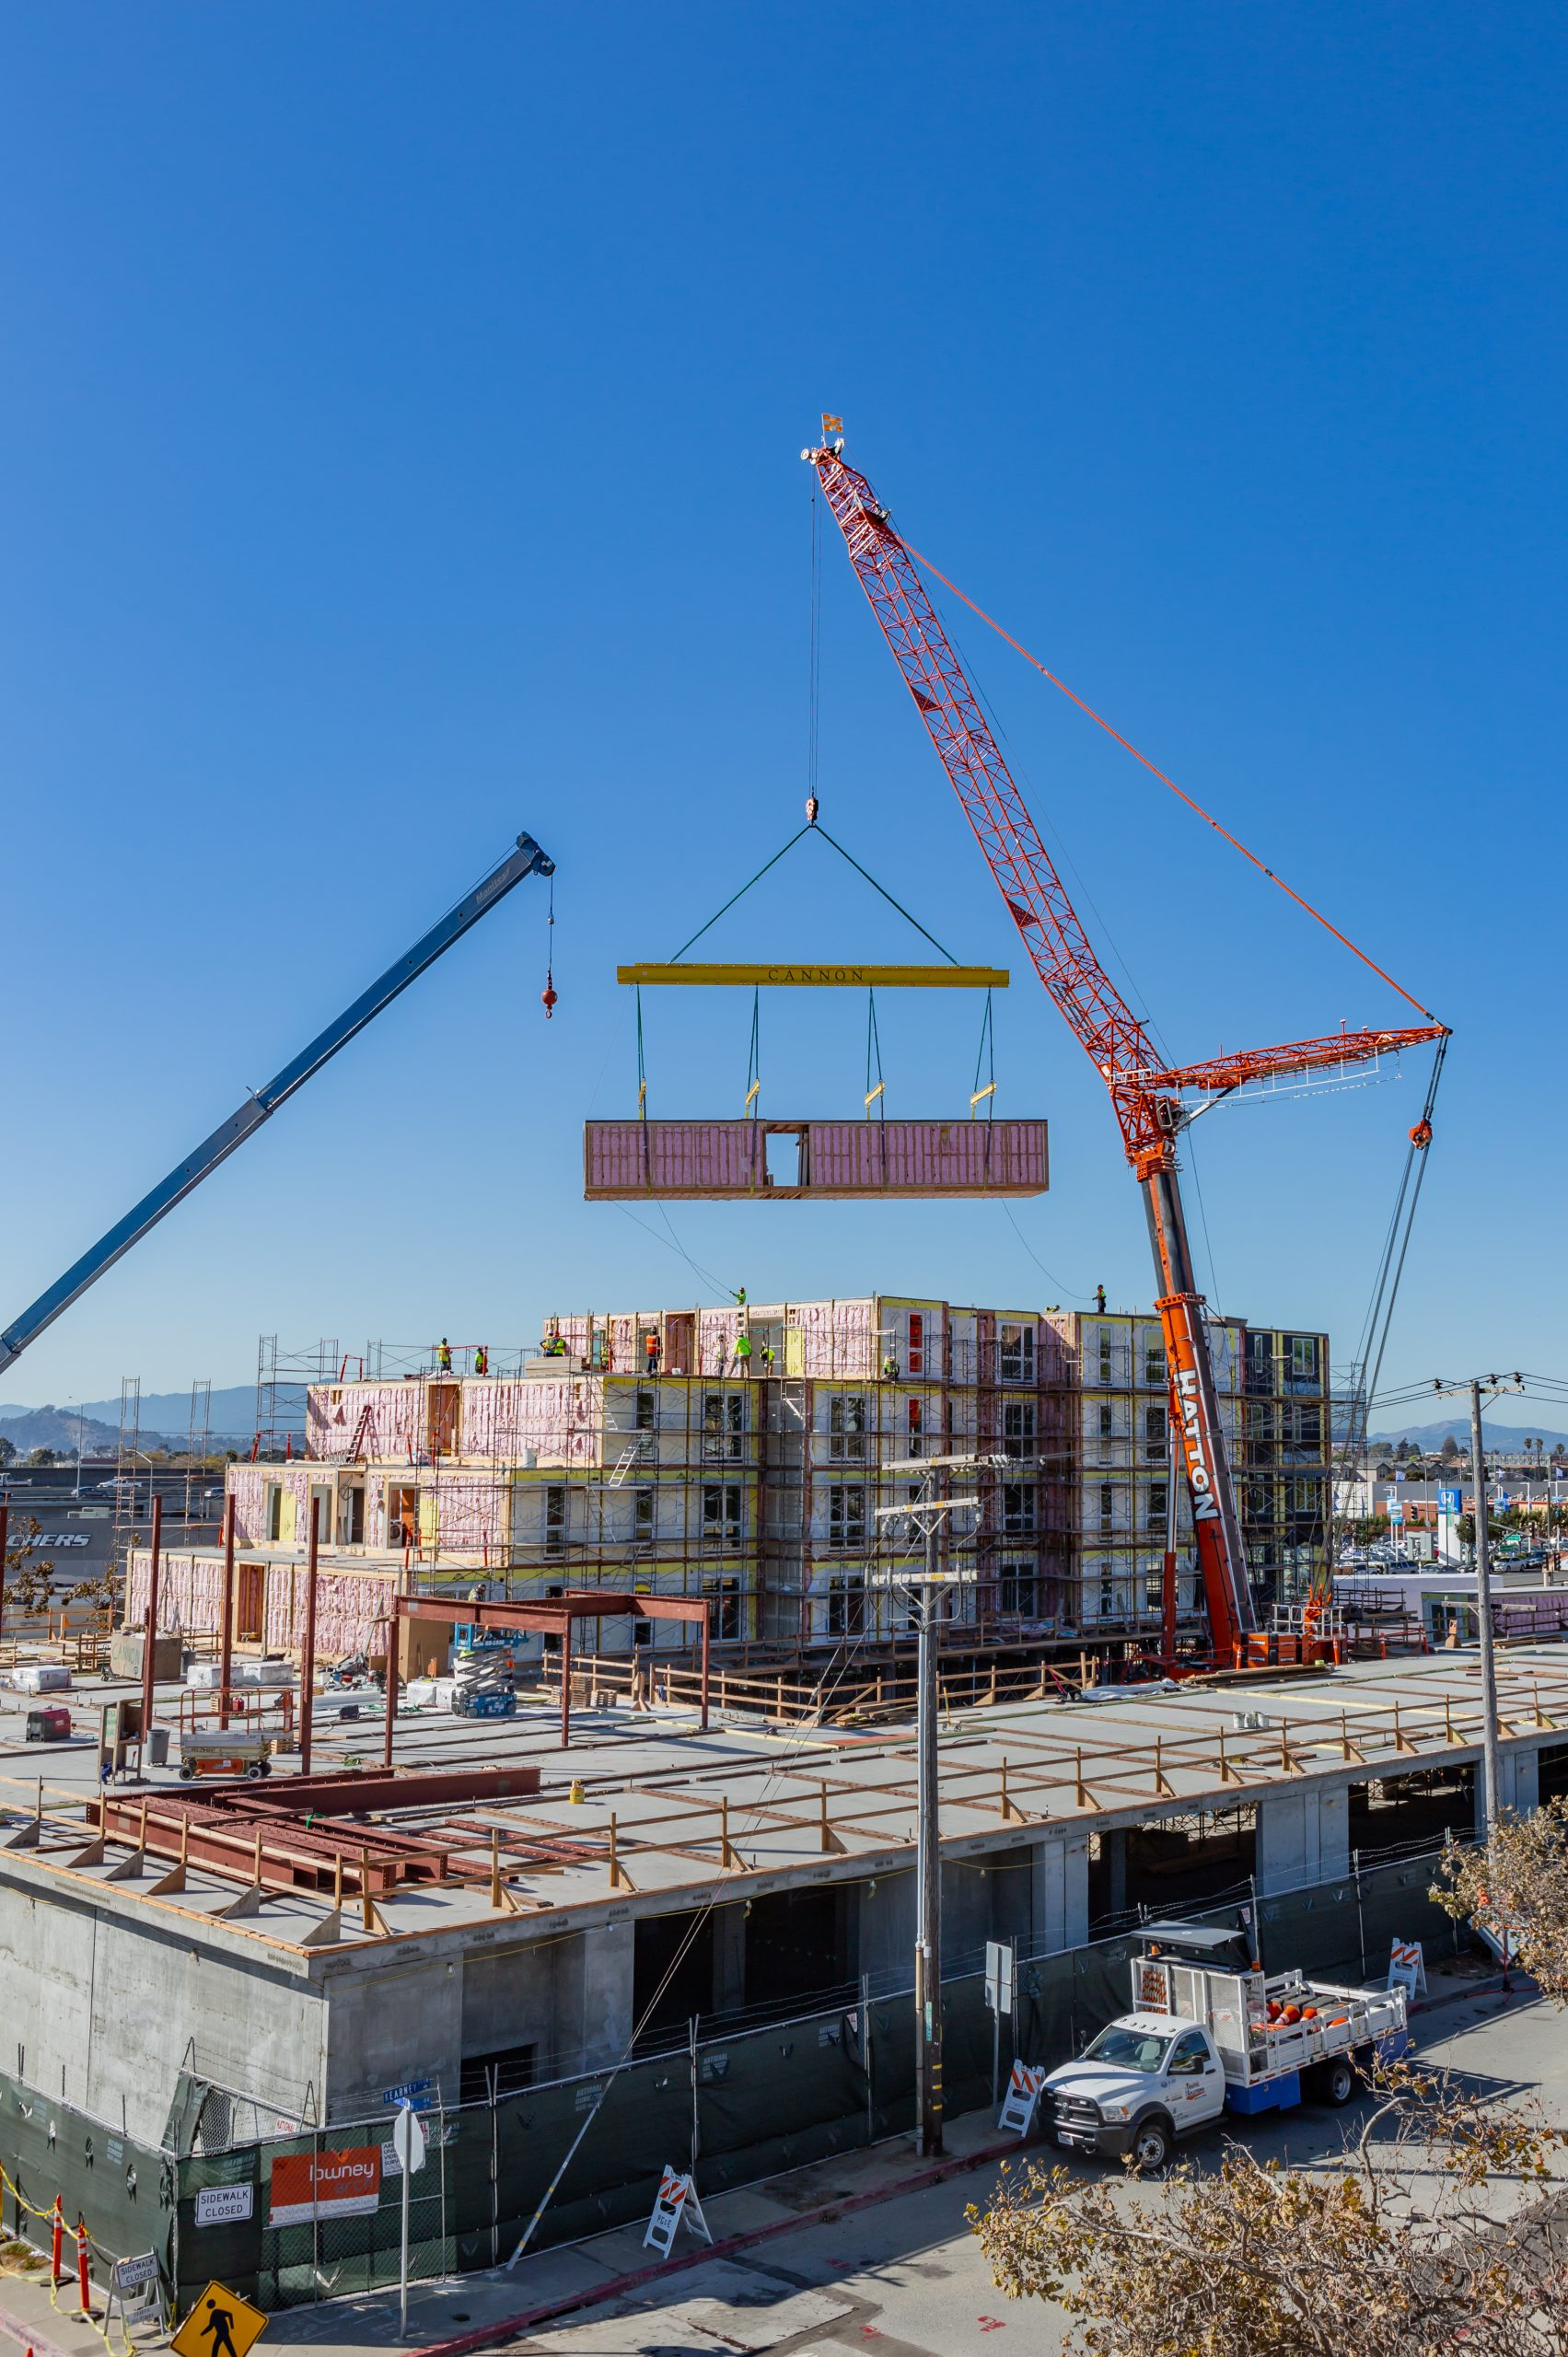 Modular Construction Has An Image Problem Housing Proponents Are Trying To Fix It-March 4, 2021-Lowney Architecture